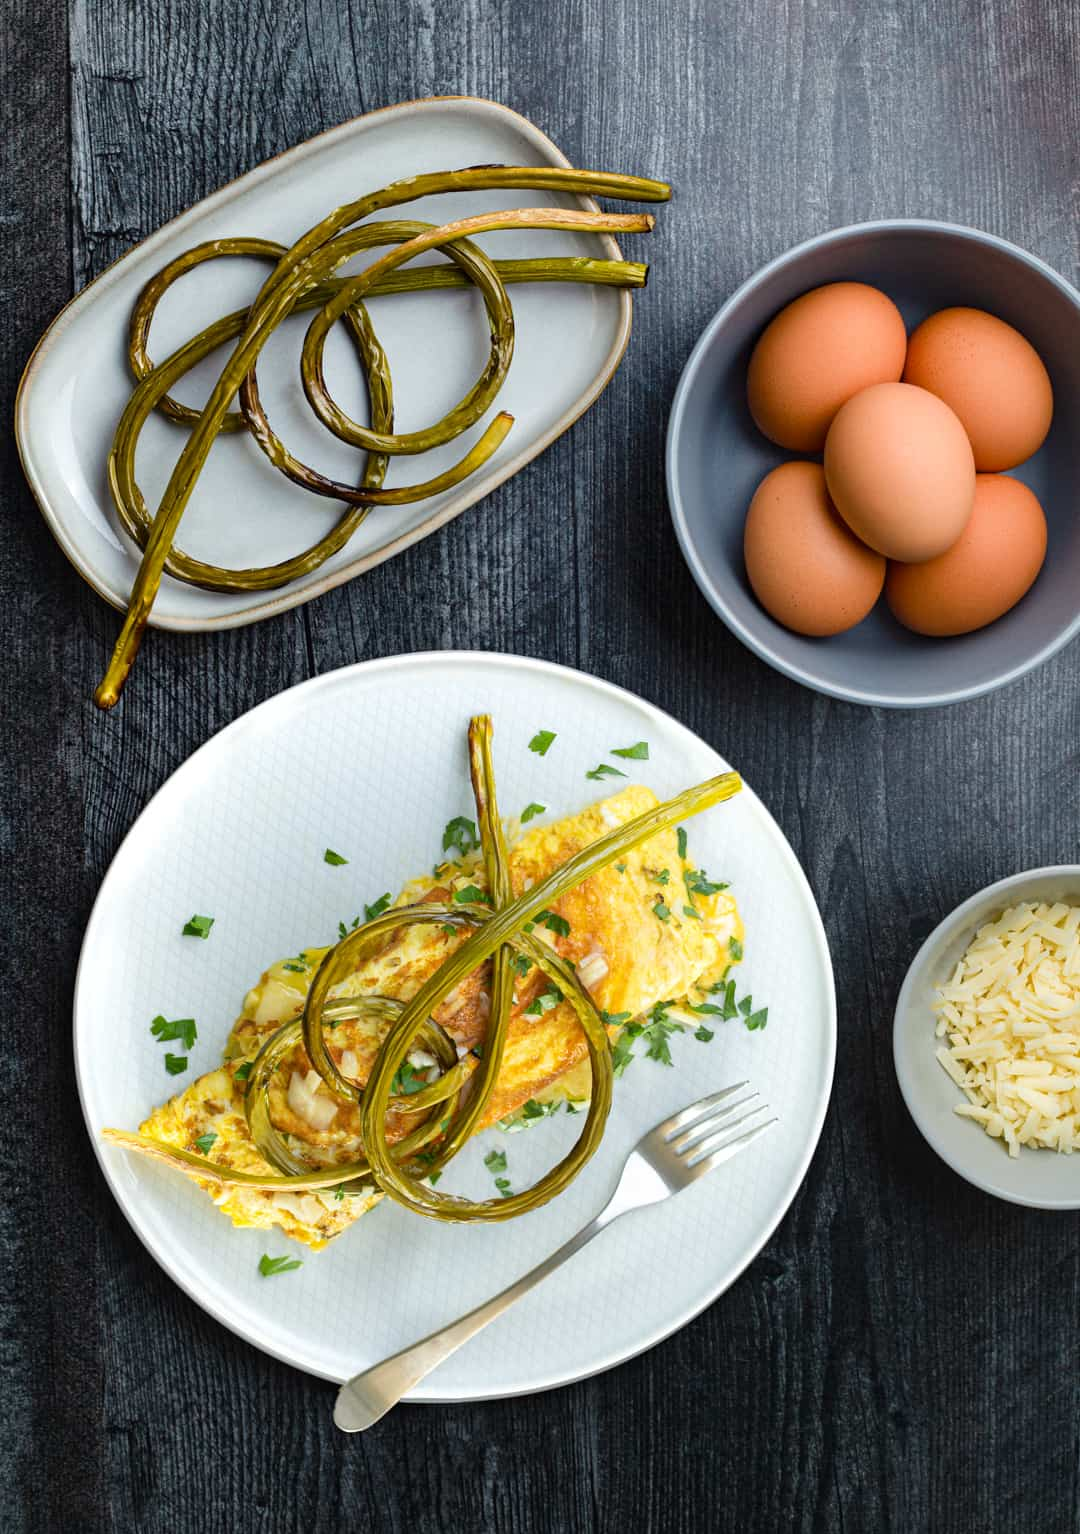 roasted garlic scapes on top of an omelet with eggs and cheese